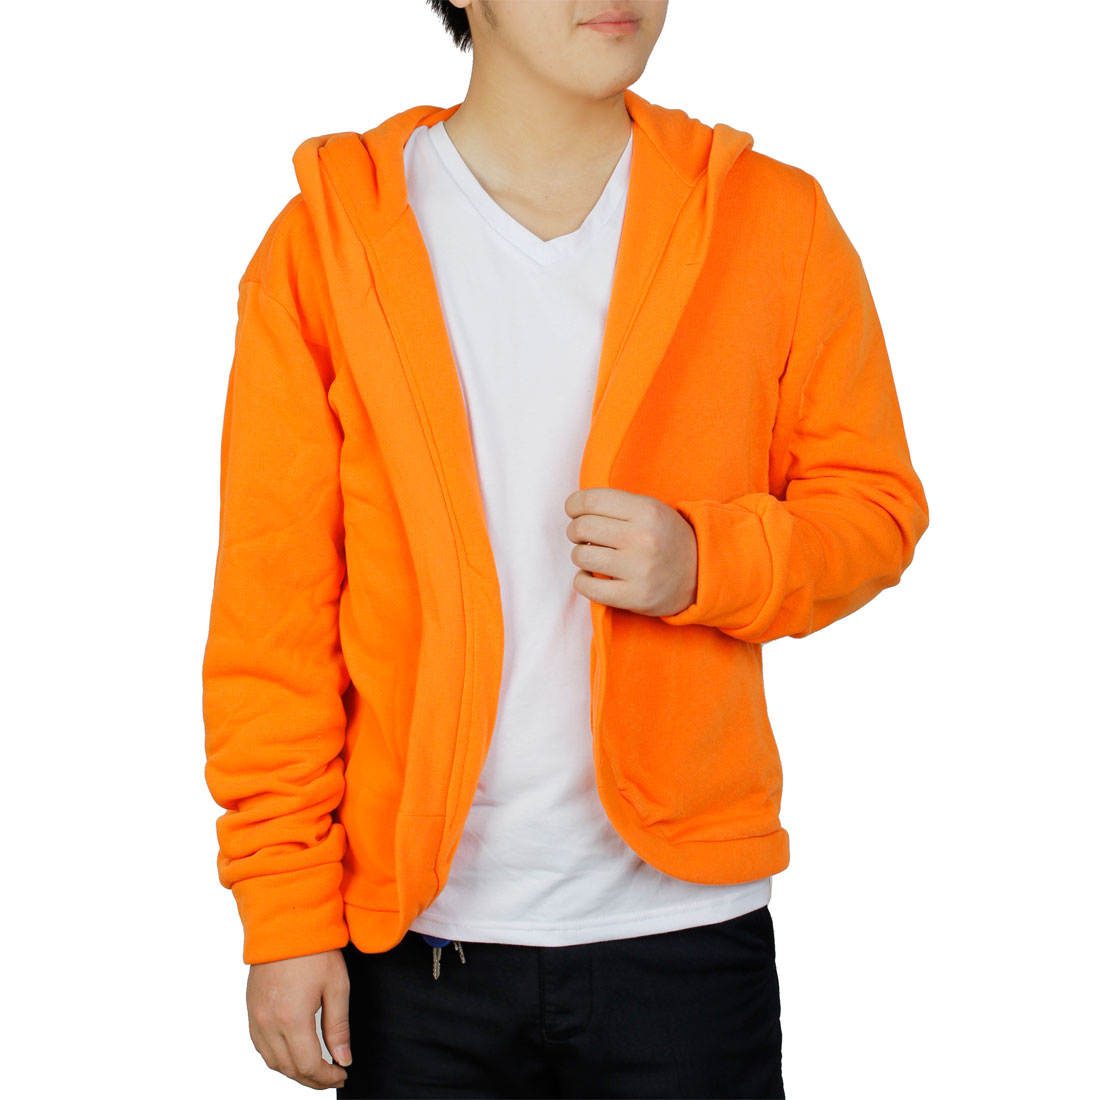 Men Front Opening Long Sleeve Solid Color Casual Jackets Hoodies M Orange